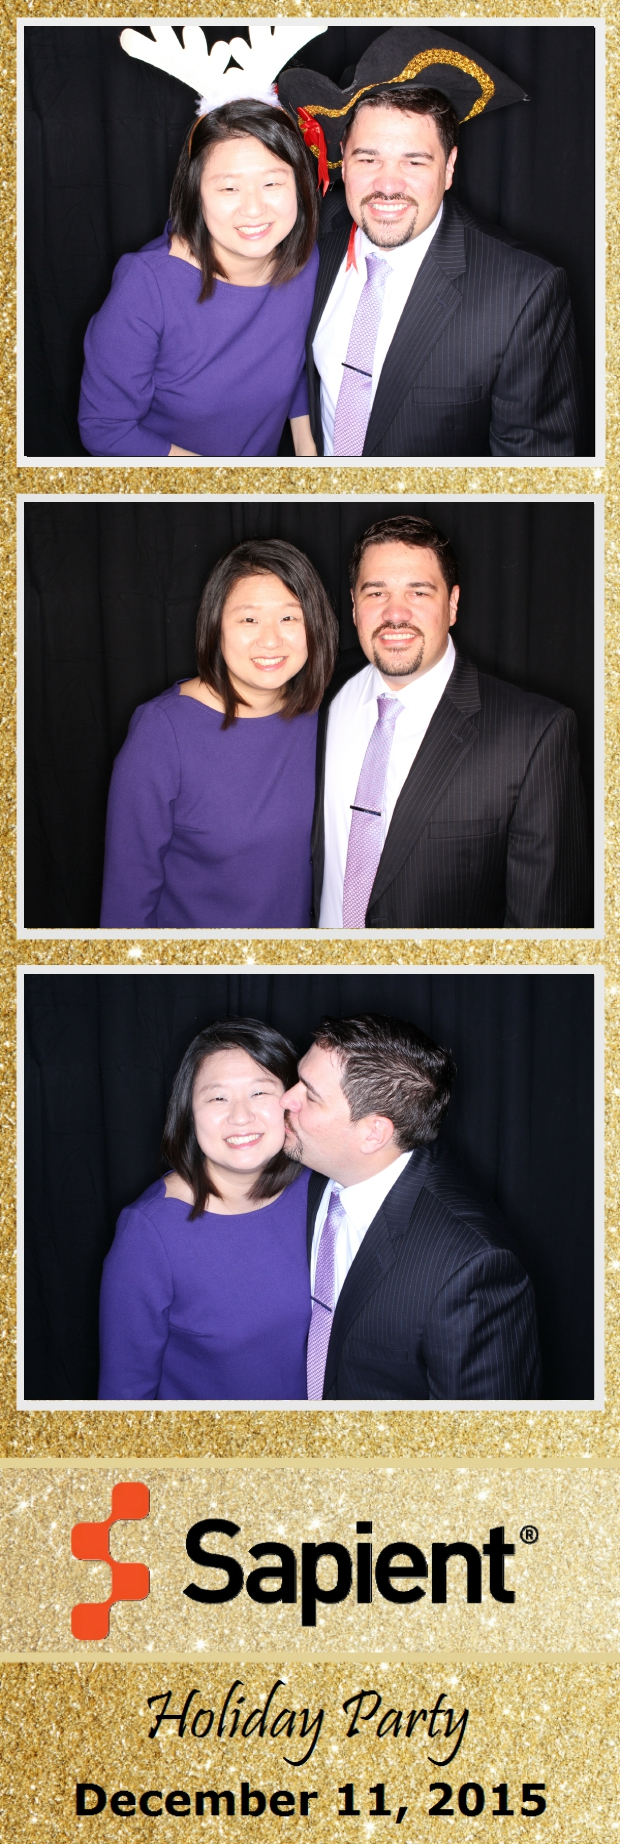 Guest House Events Photo Booth Sapient Holiday Party (20).jpg